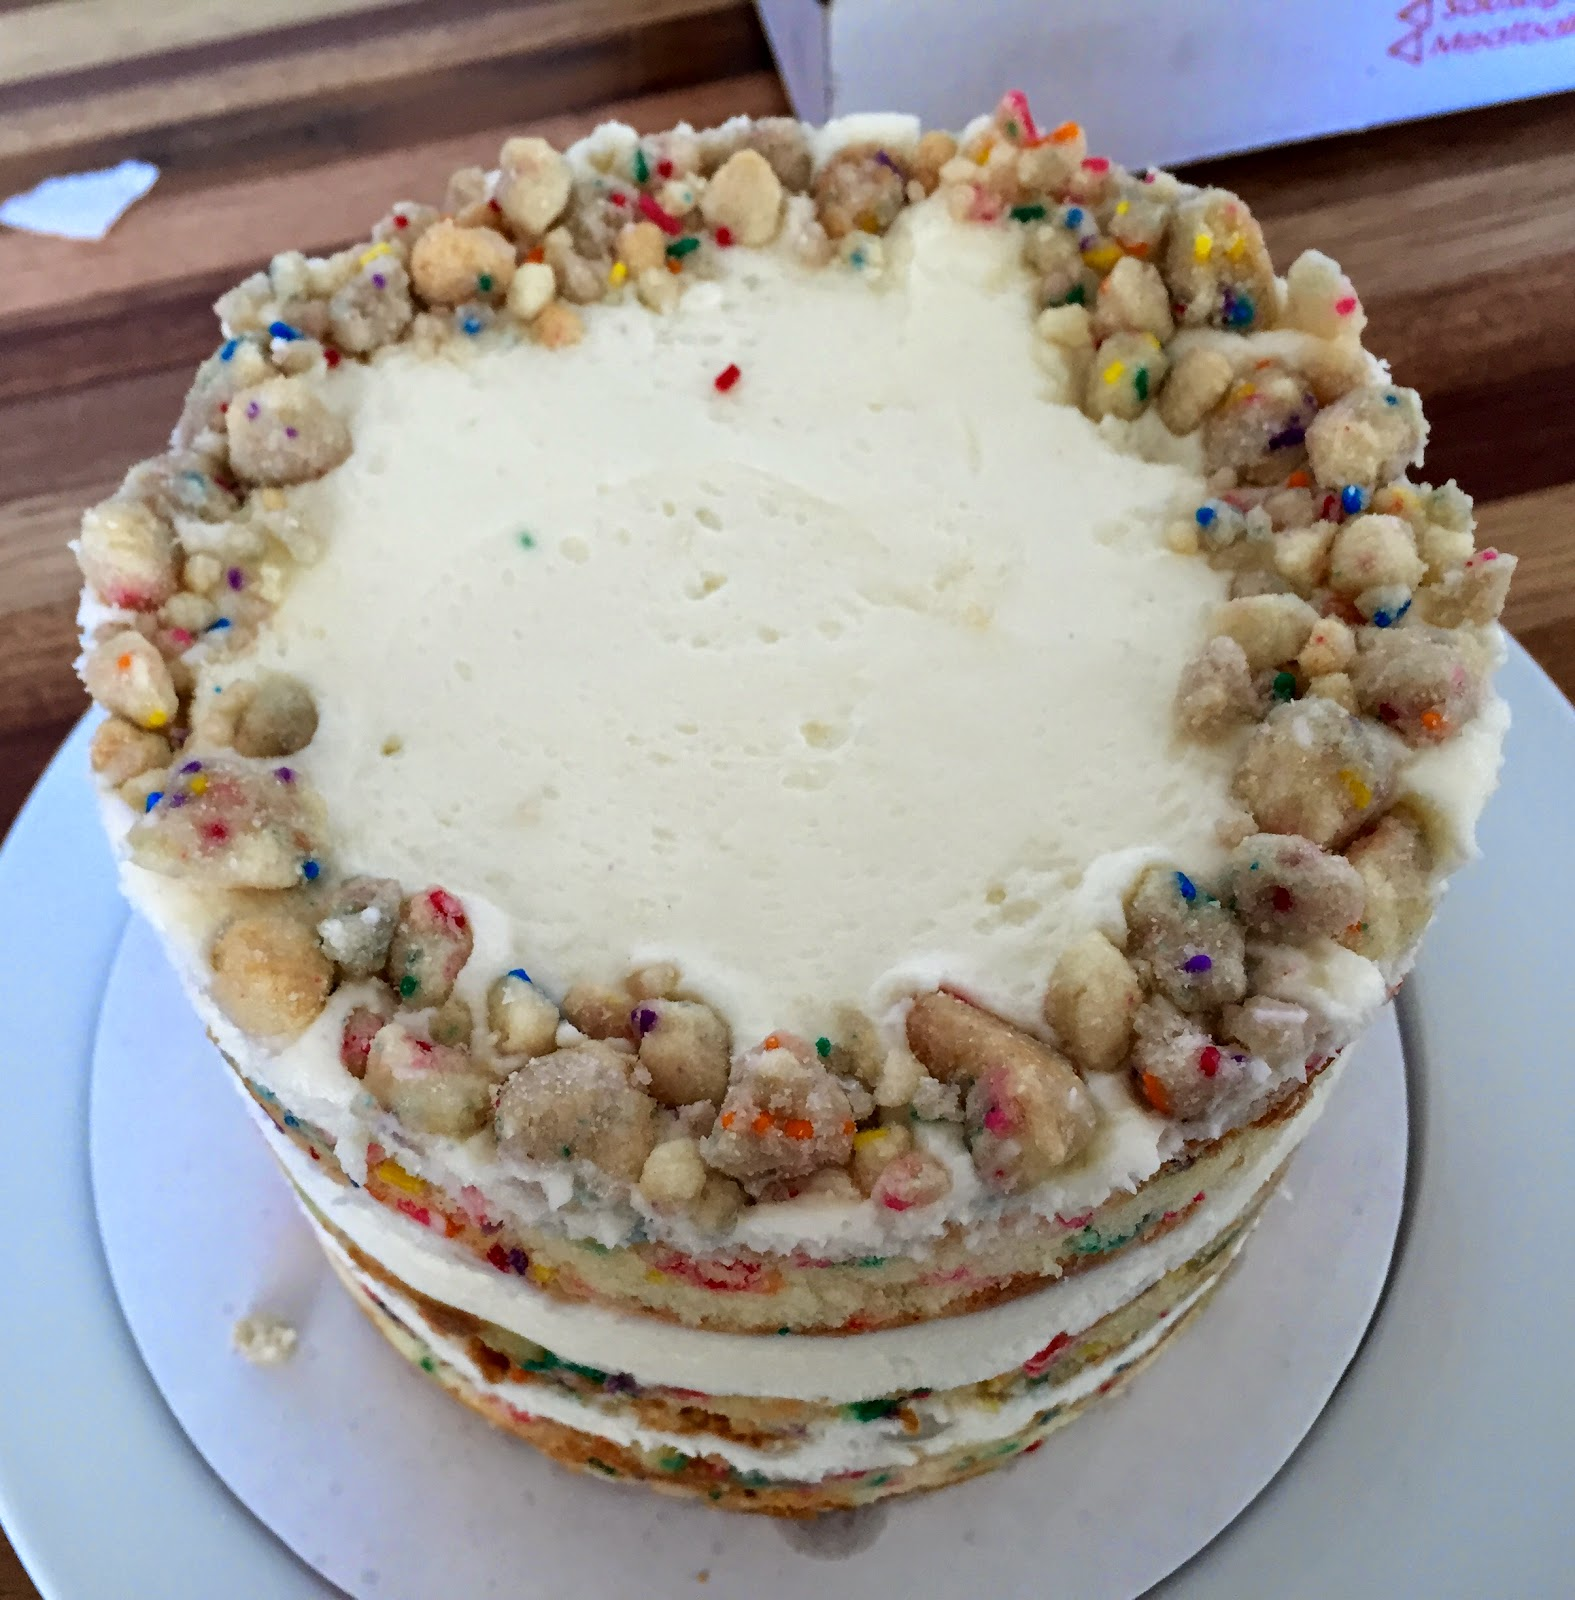 For Many Of Us This Cake Evokes The Vision A Small Round With Birthday Candles Sprinkles And Funfetti Frosting Tosi Takes Classic Memory